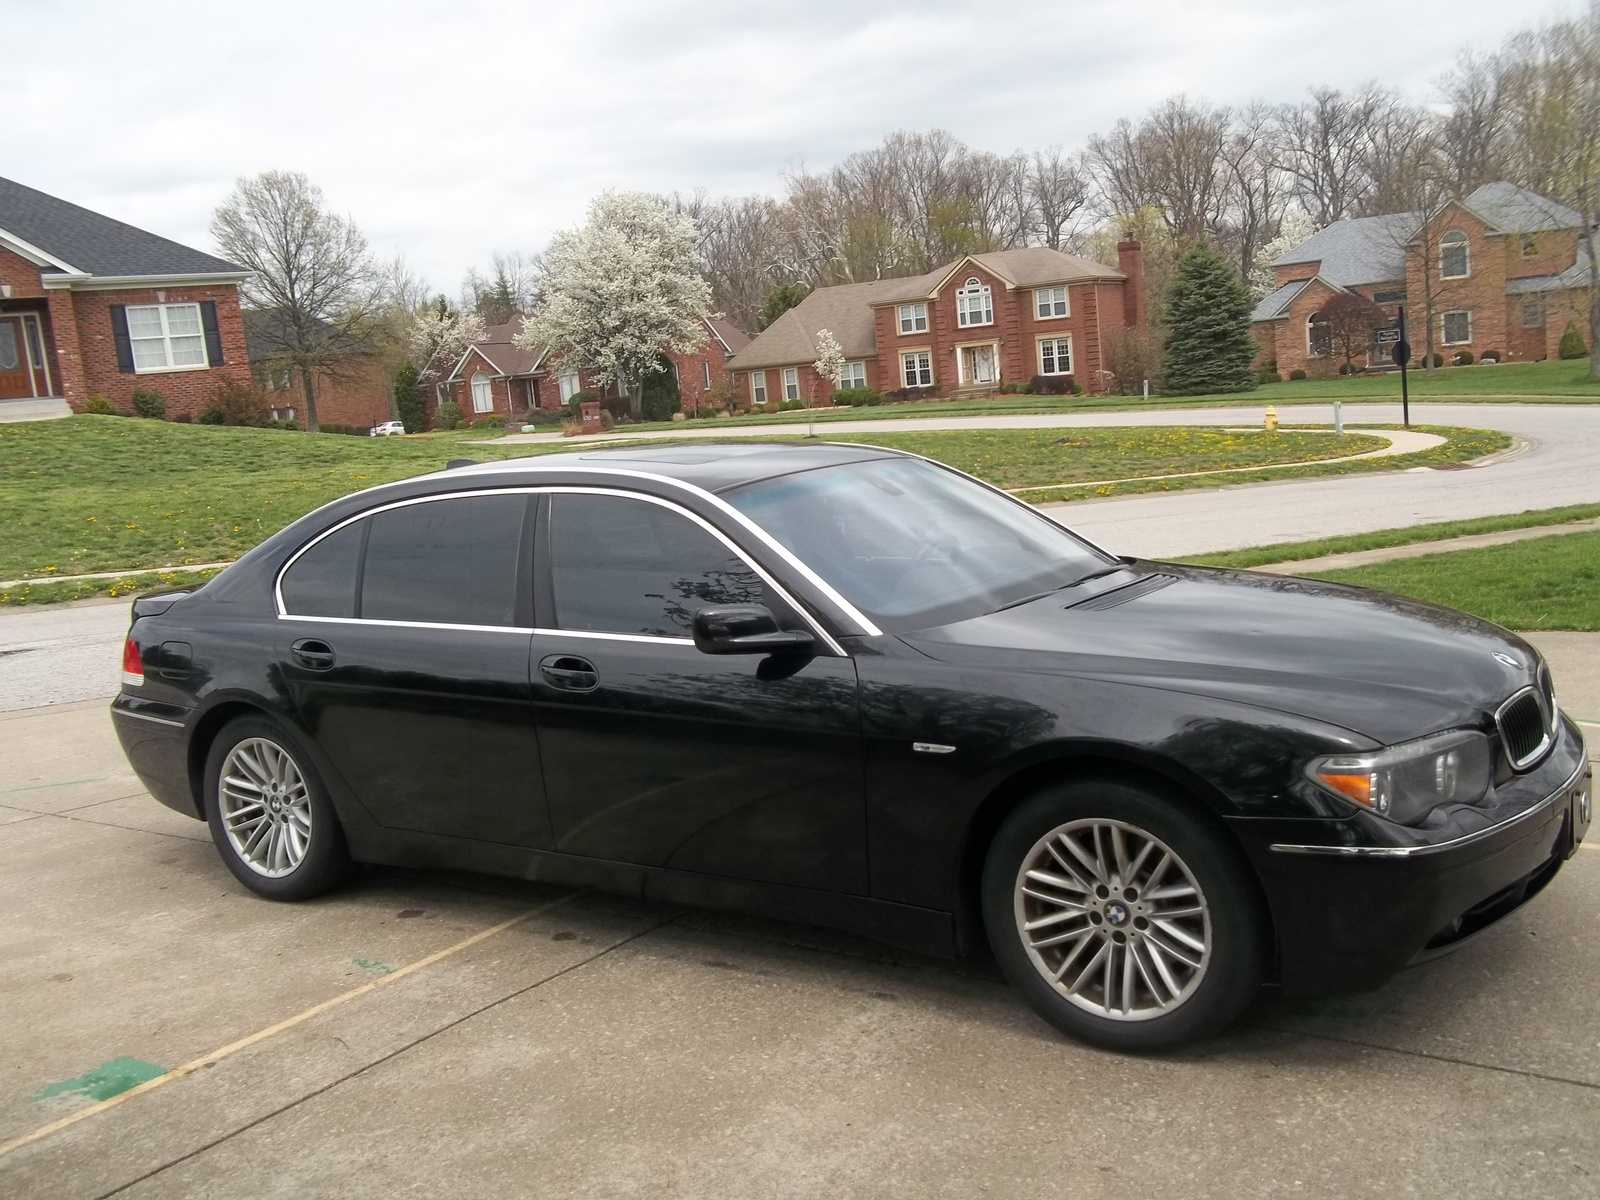 BMW 7 series 735Li 2004 photo - 2